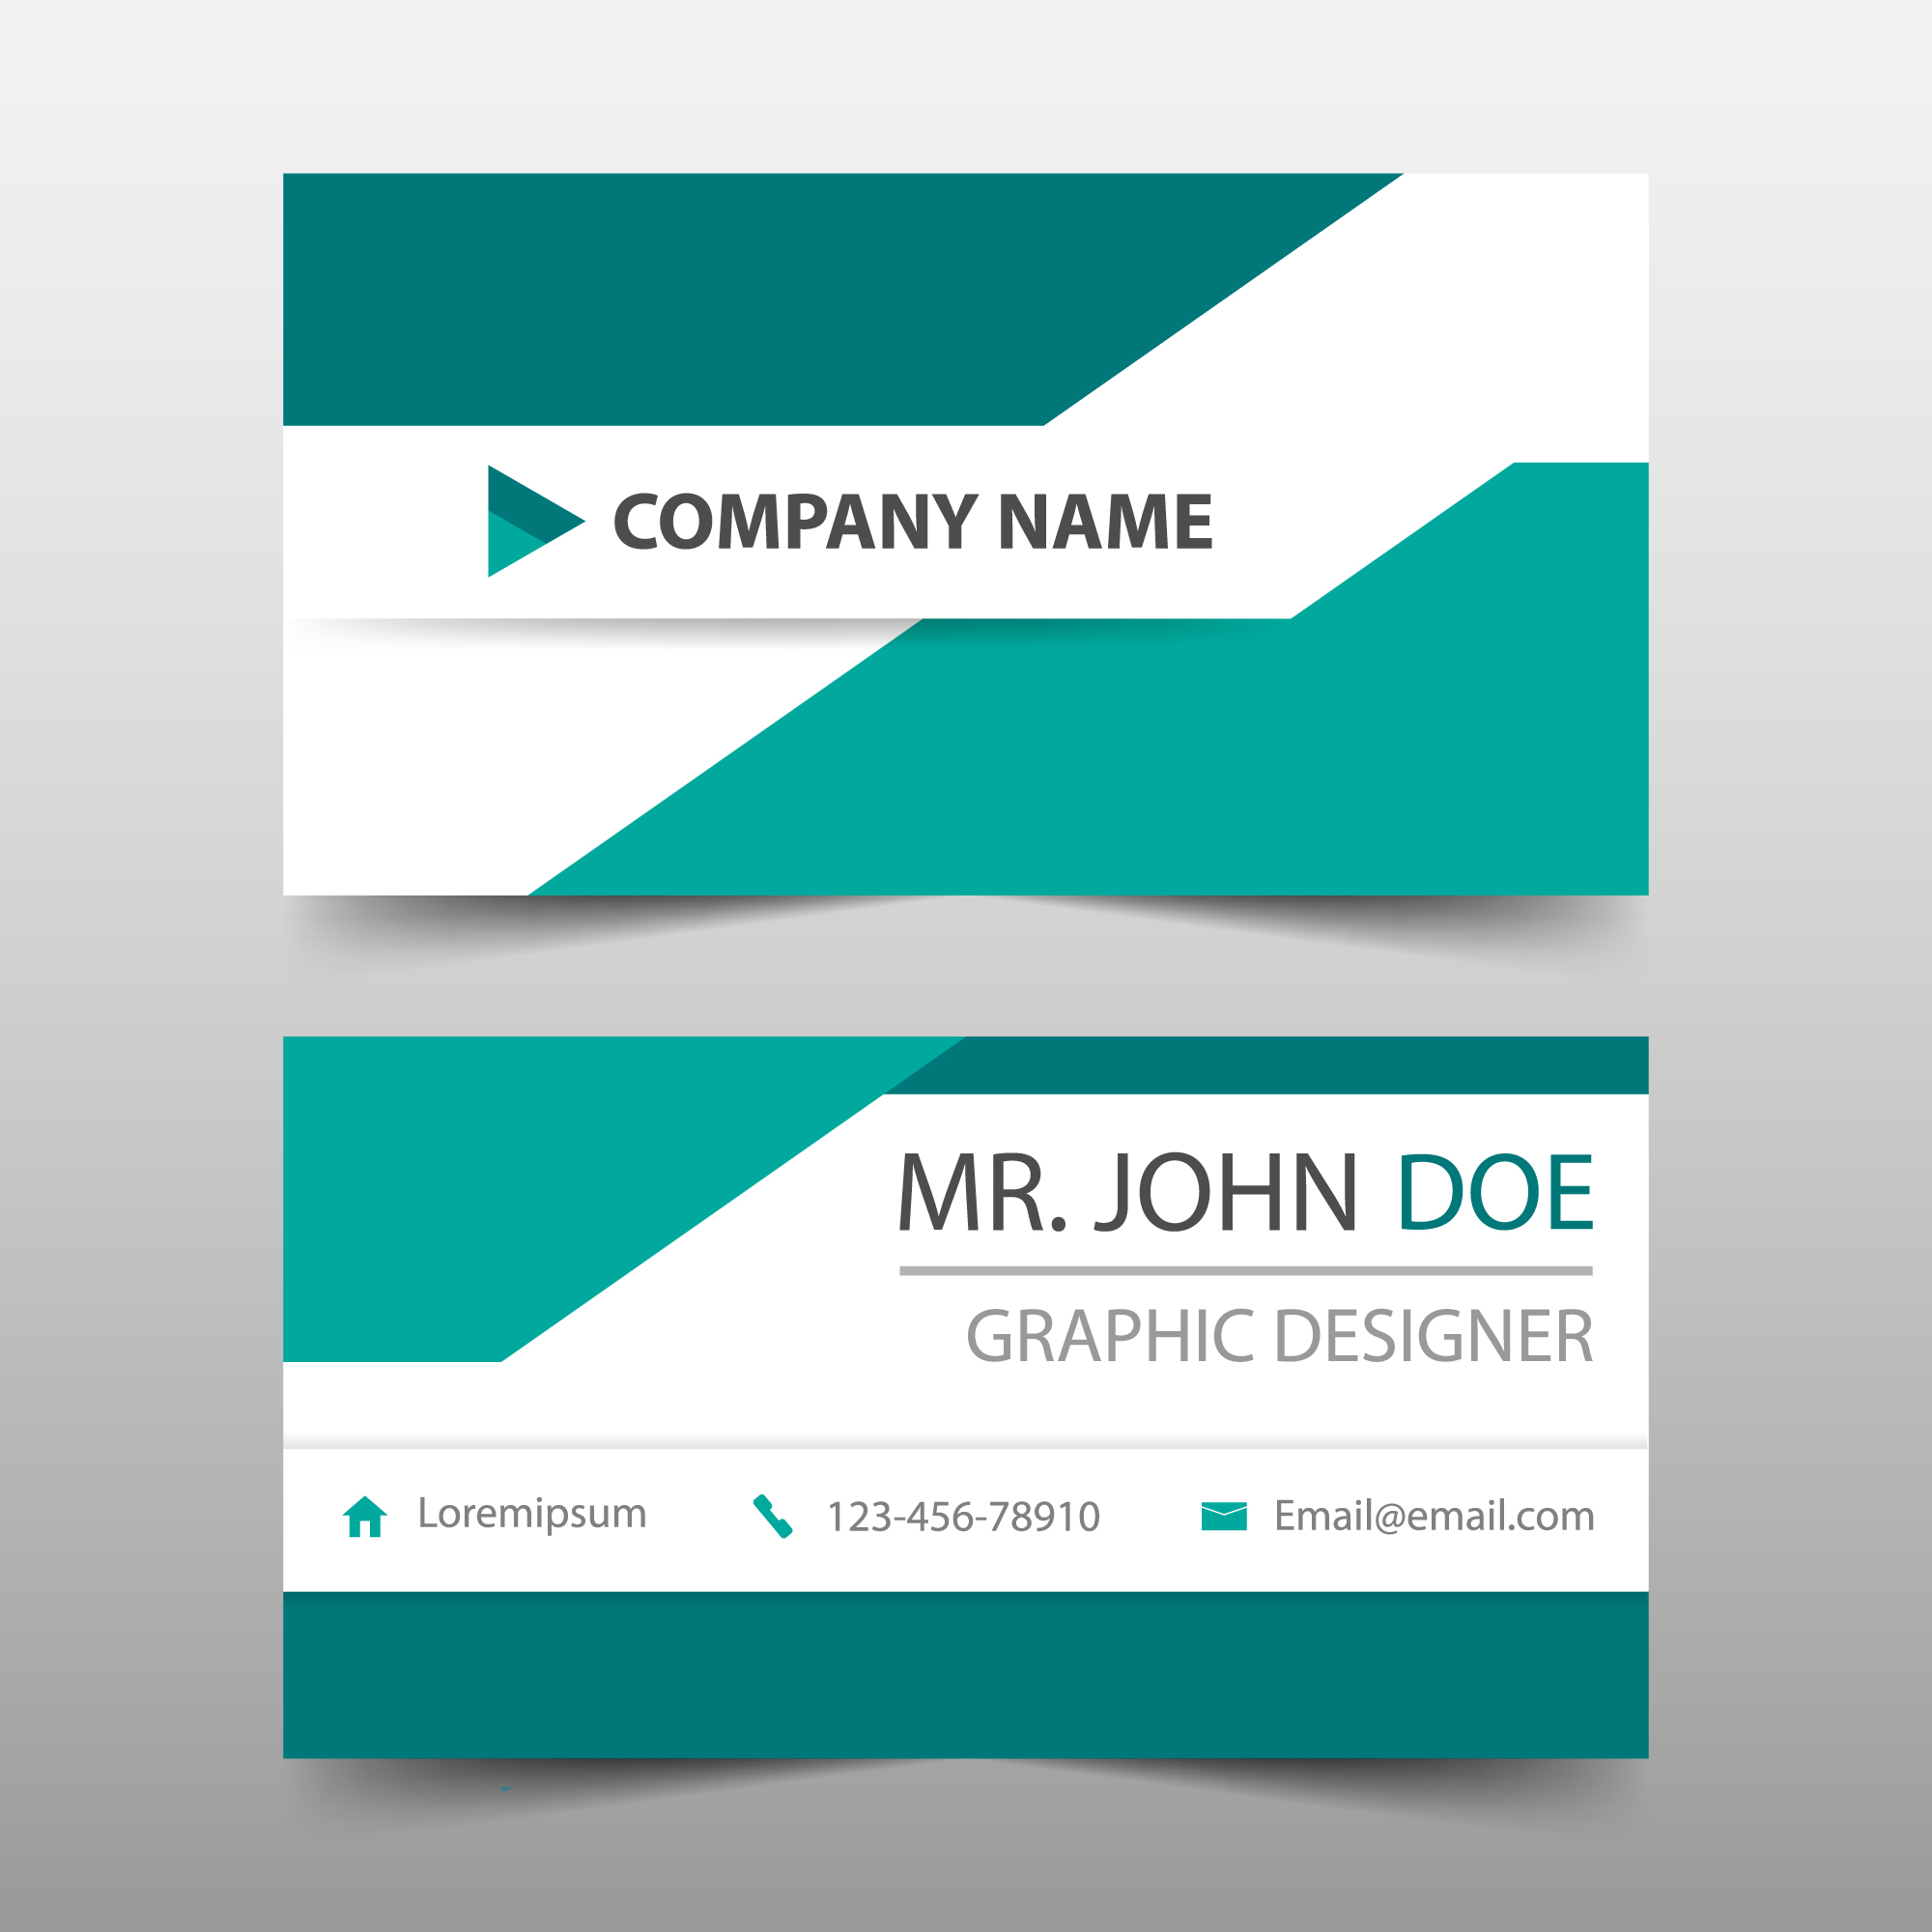 Geometric style bluish green business card